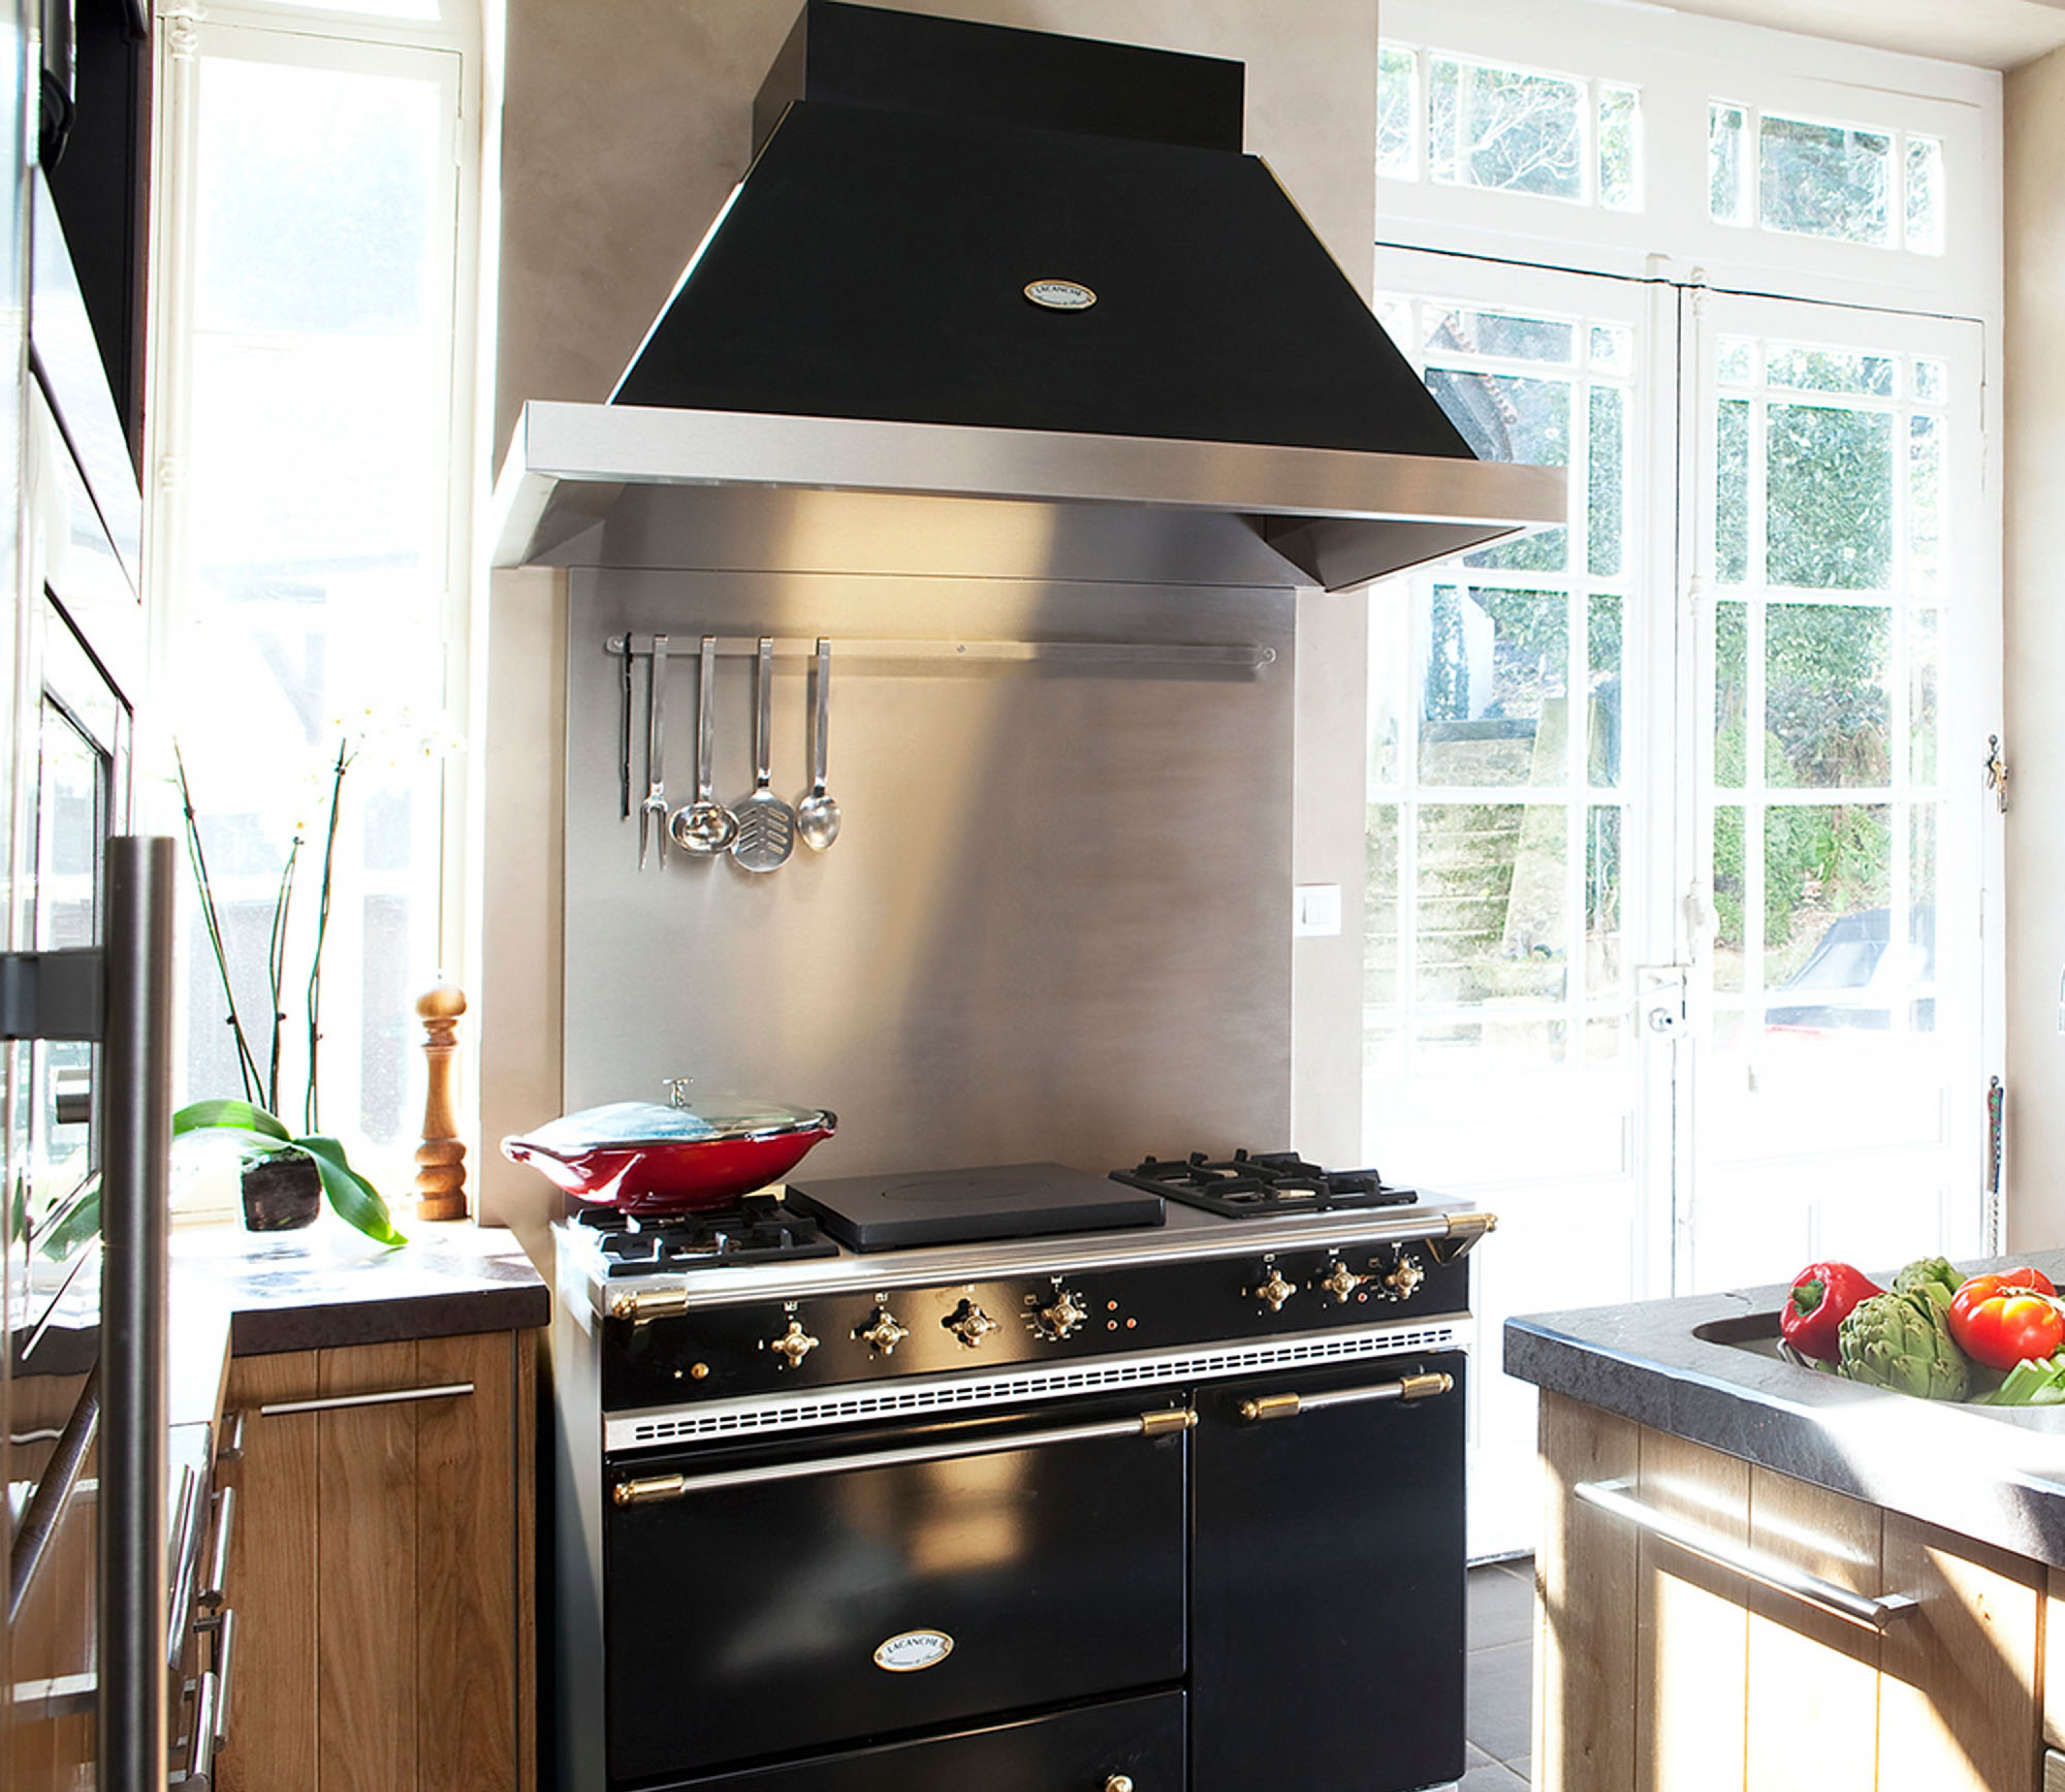 backsplashes for kitchens kitchen cabinets nashville tn online shop - lacanche range cookers and accessories